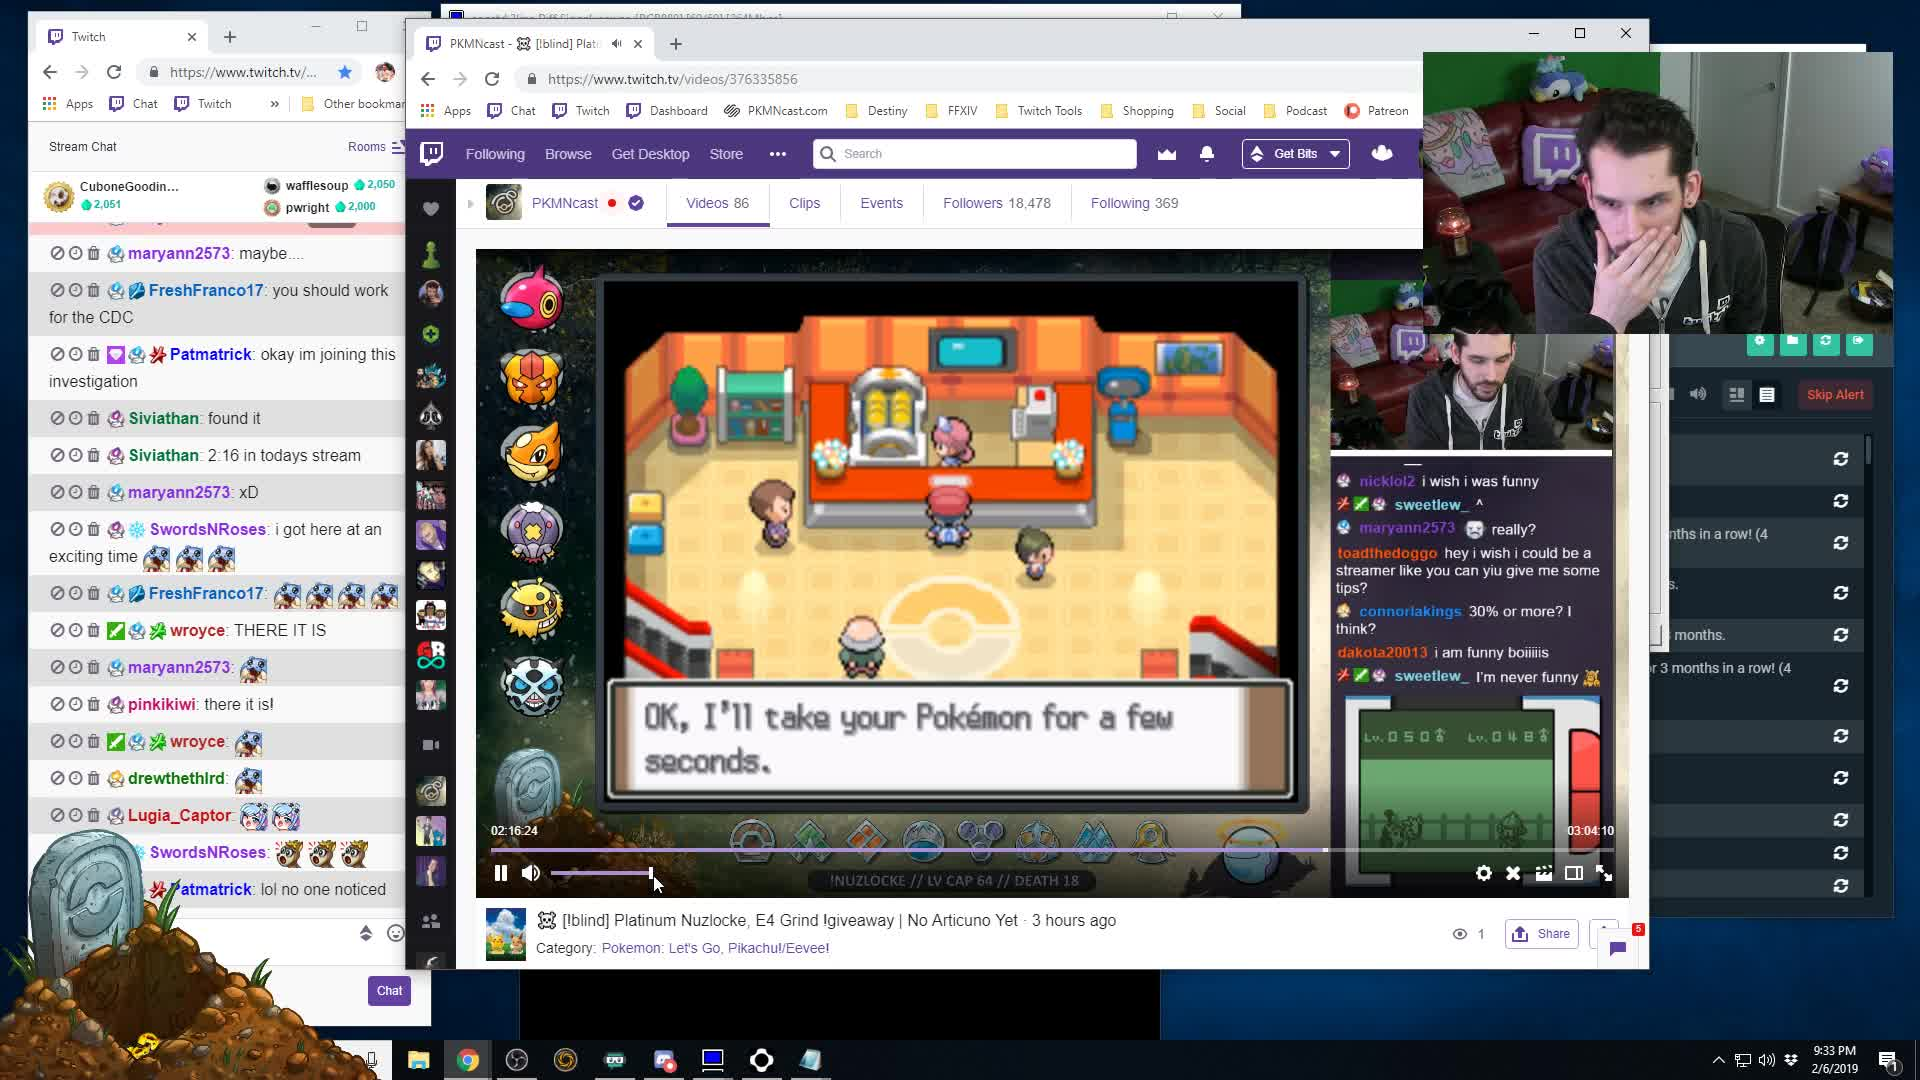 PKMNcast - Steve missed pokerus because he was busy banning